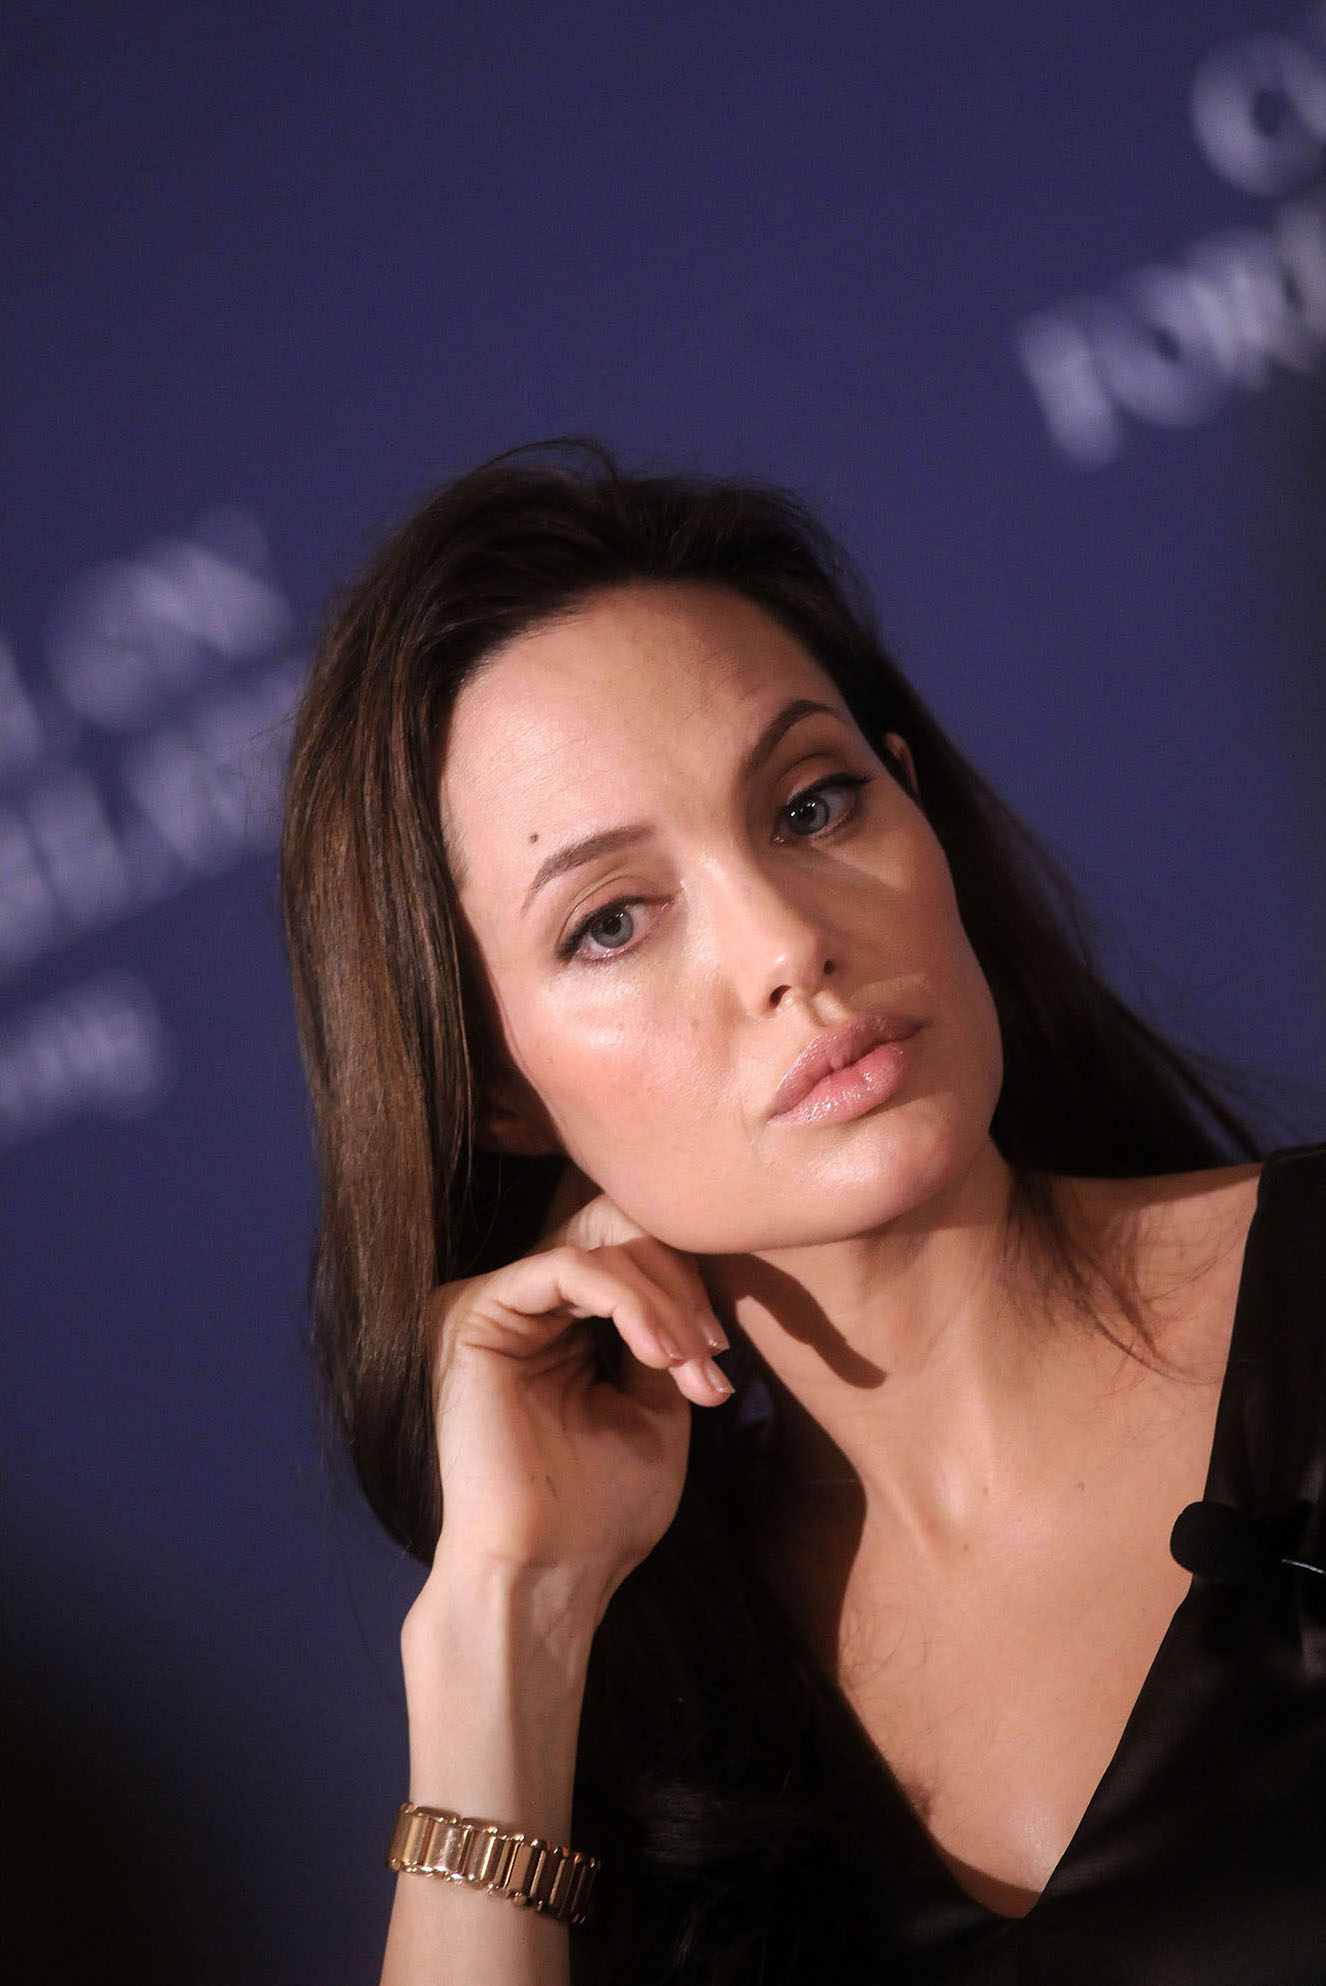 Angelina jolie photos without makeup Abbreviations List by m